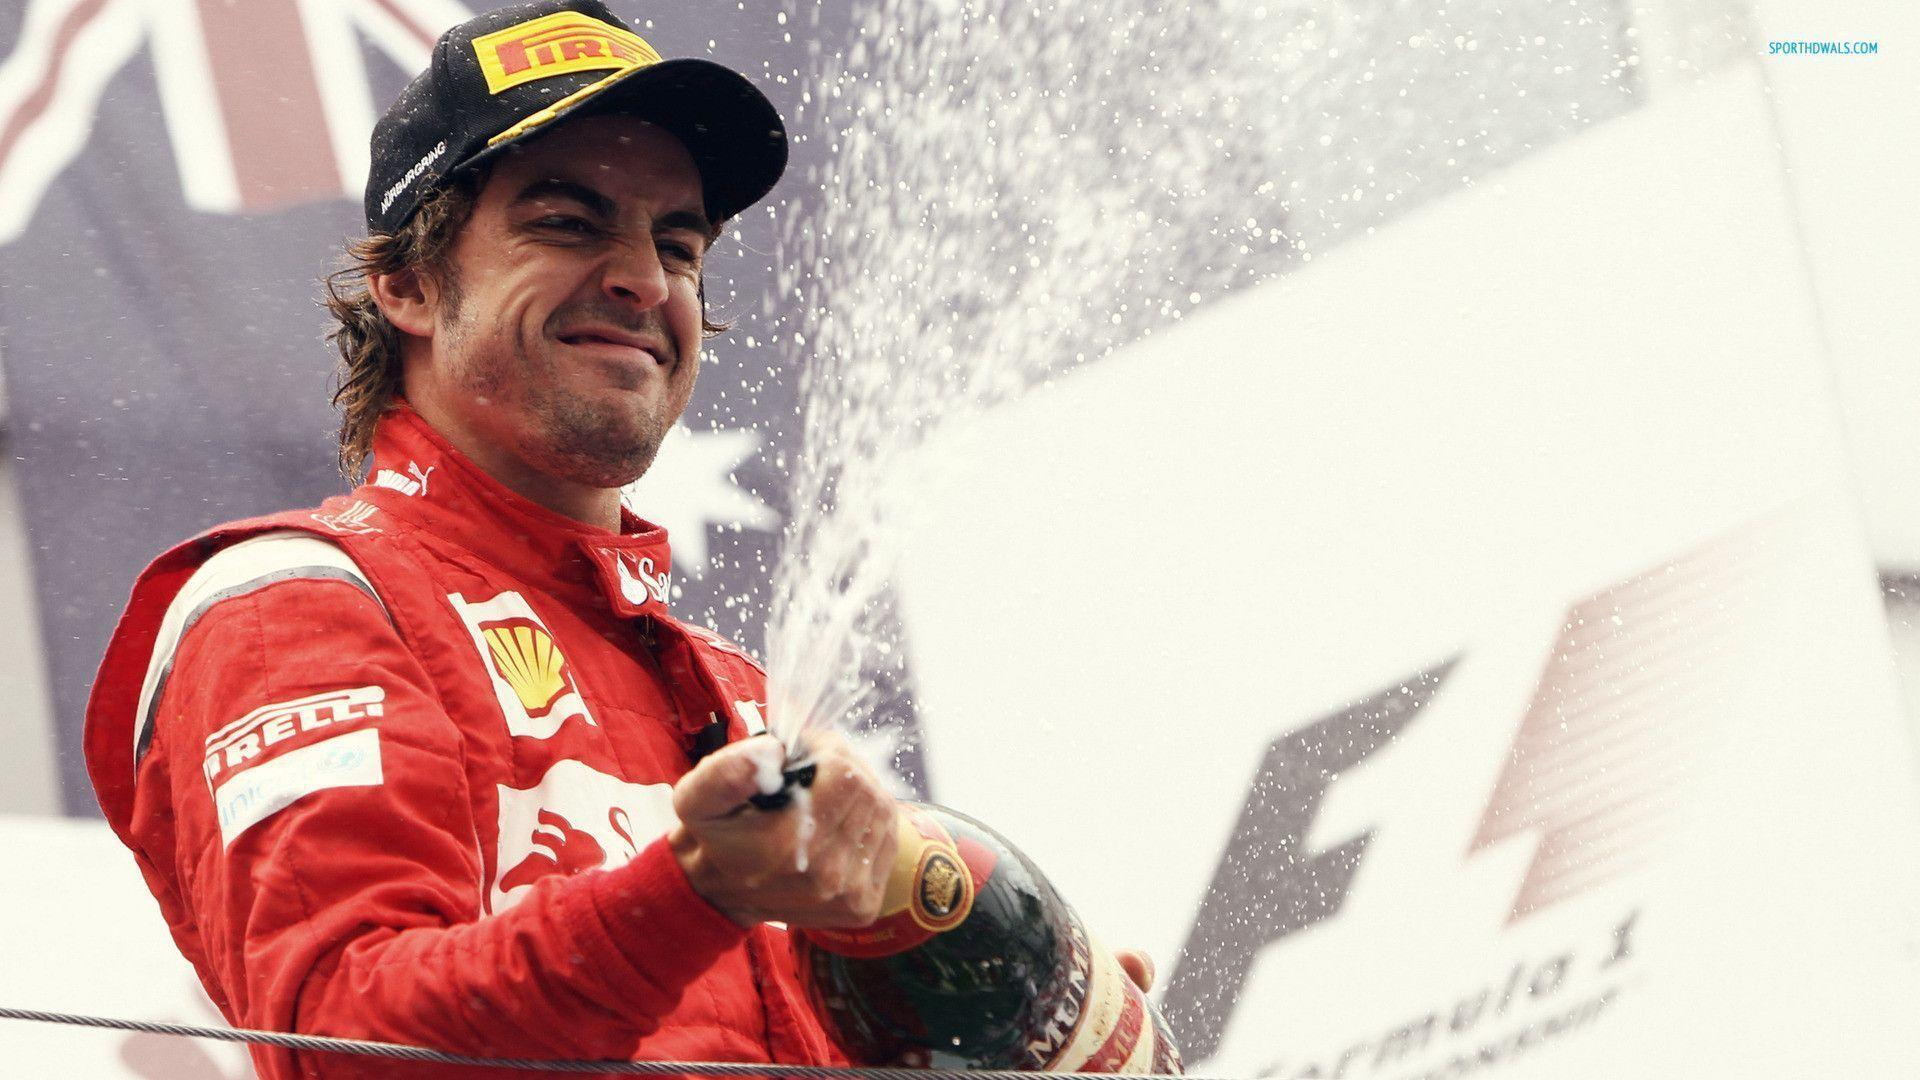 fernando alonso wallpapers and - photo #18